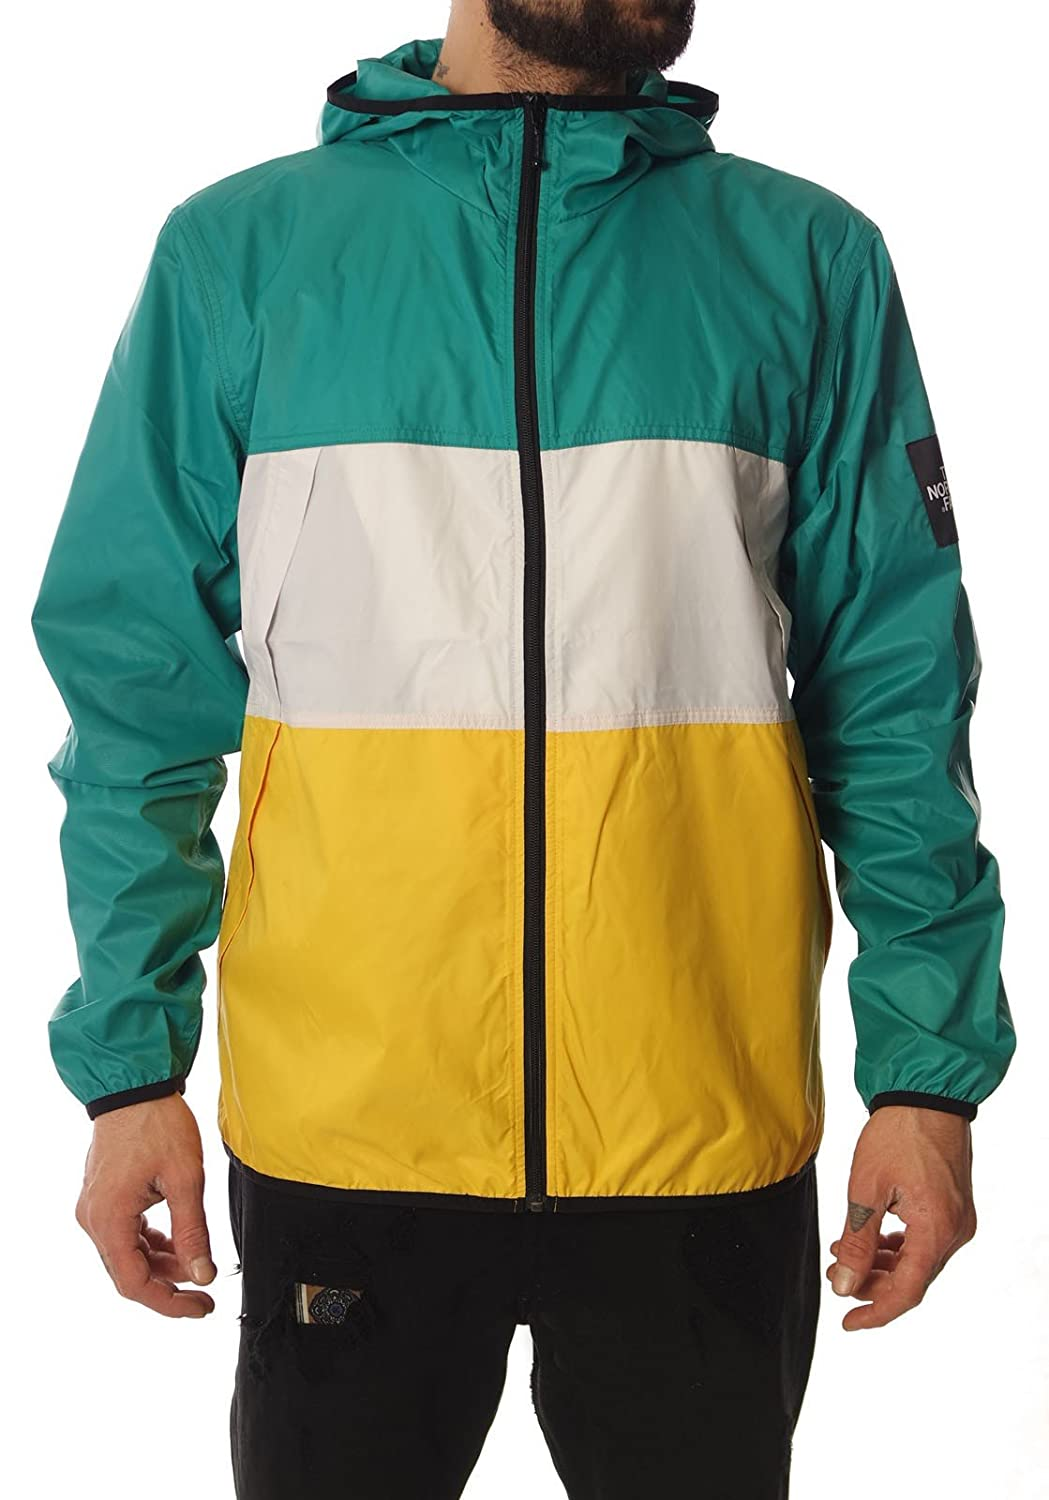 The North Face Herren Triblock Wind Jacket Teal Blue günstig